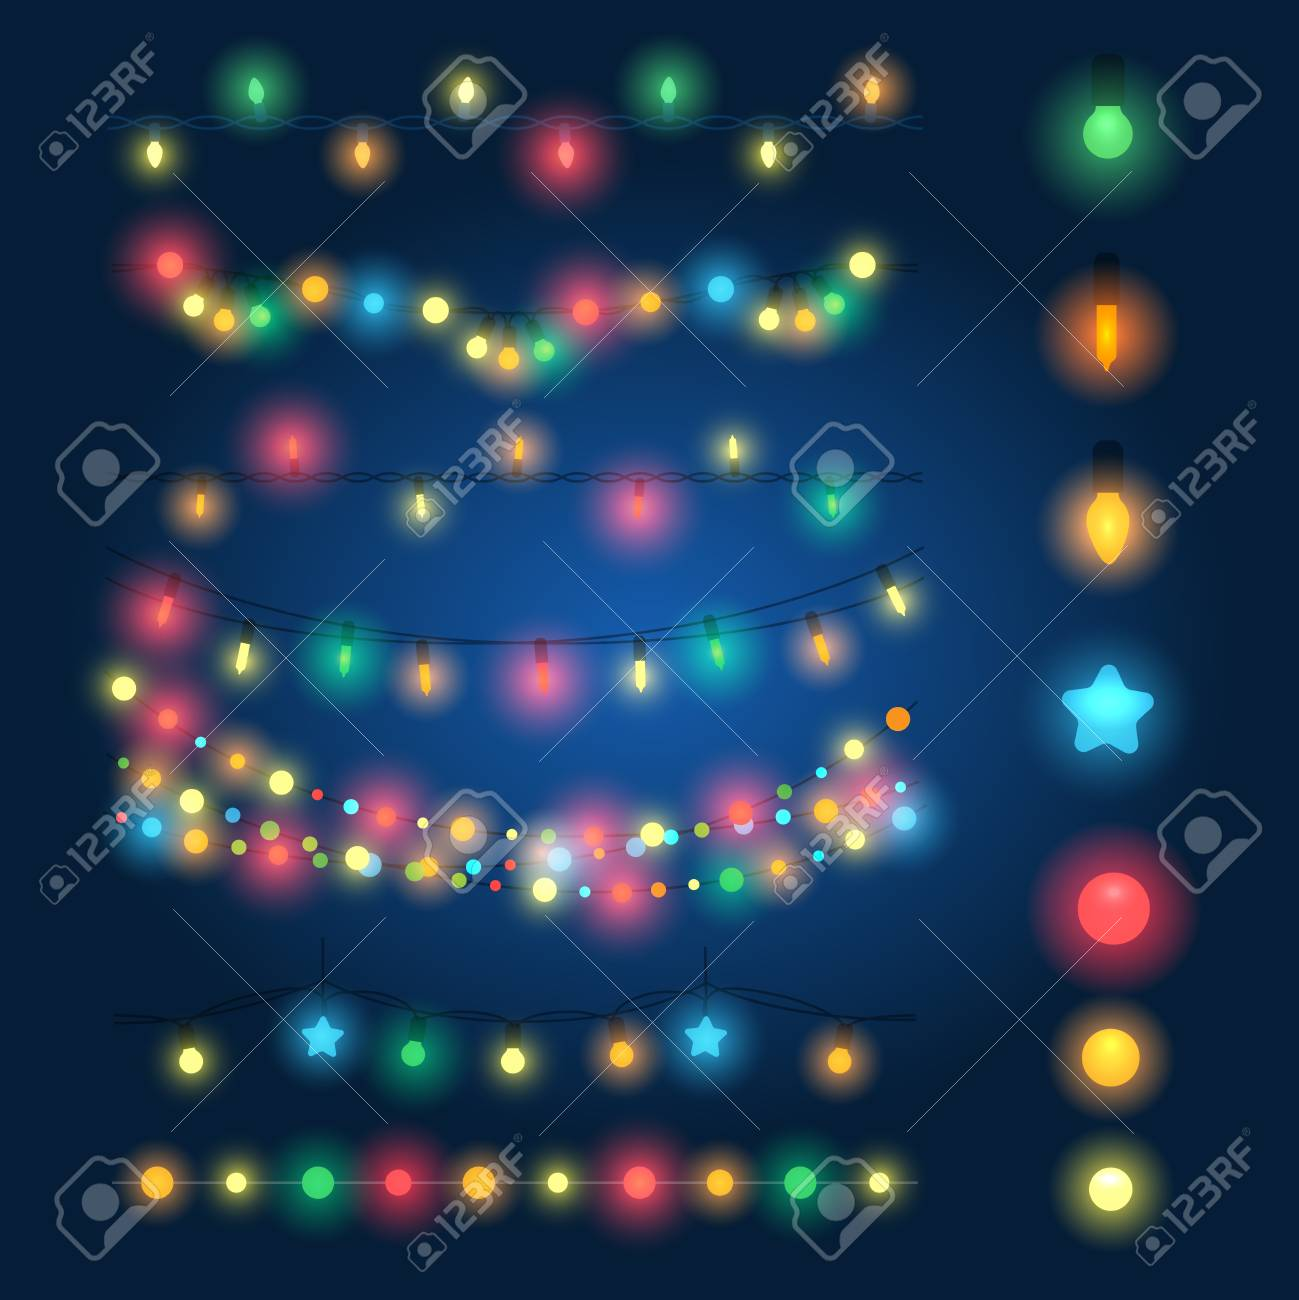 Christmas String Lights Vector Illustration Fairy Xmas Hanging Lighting Background Stock